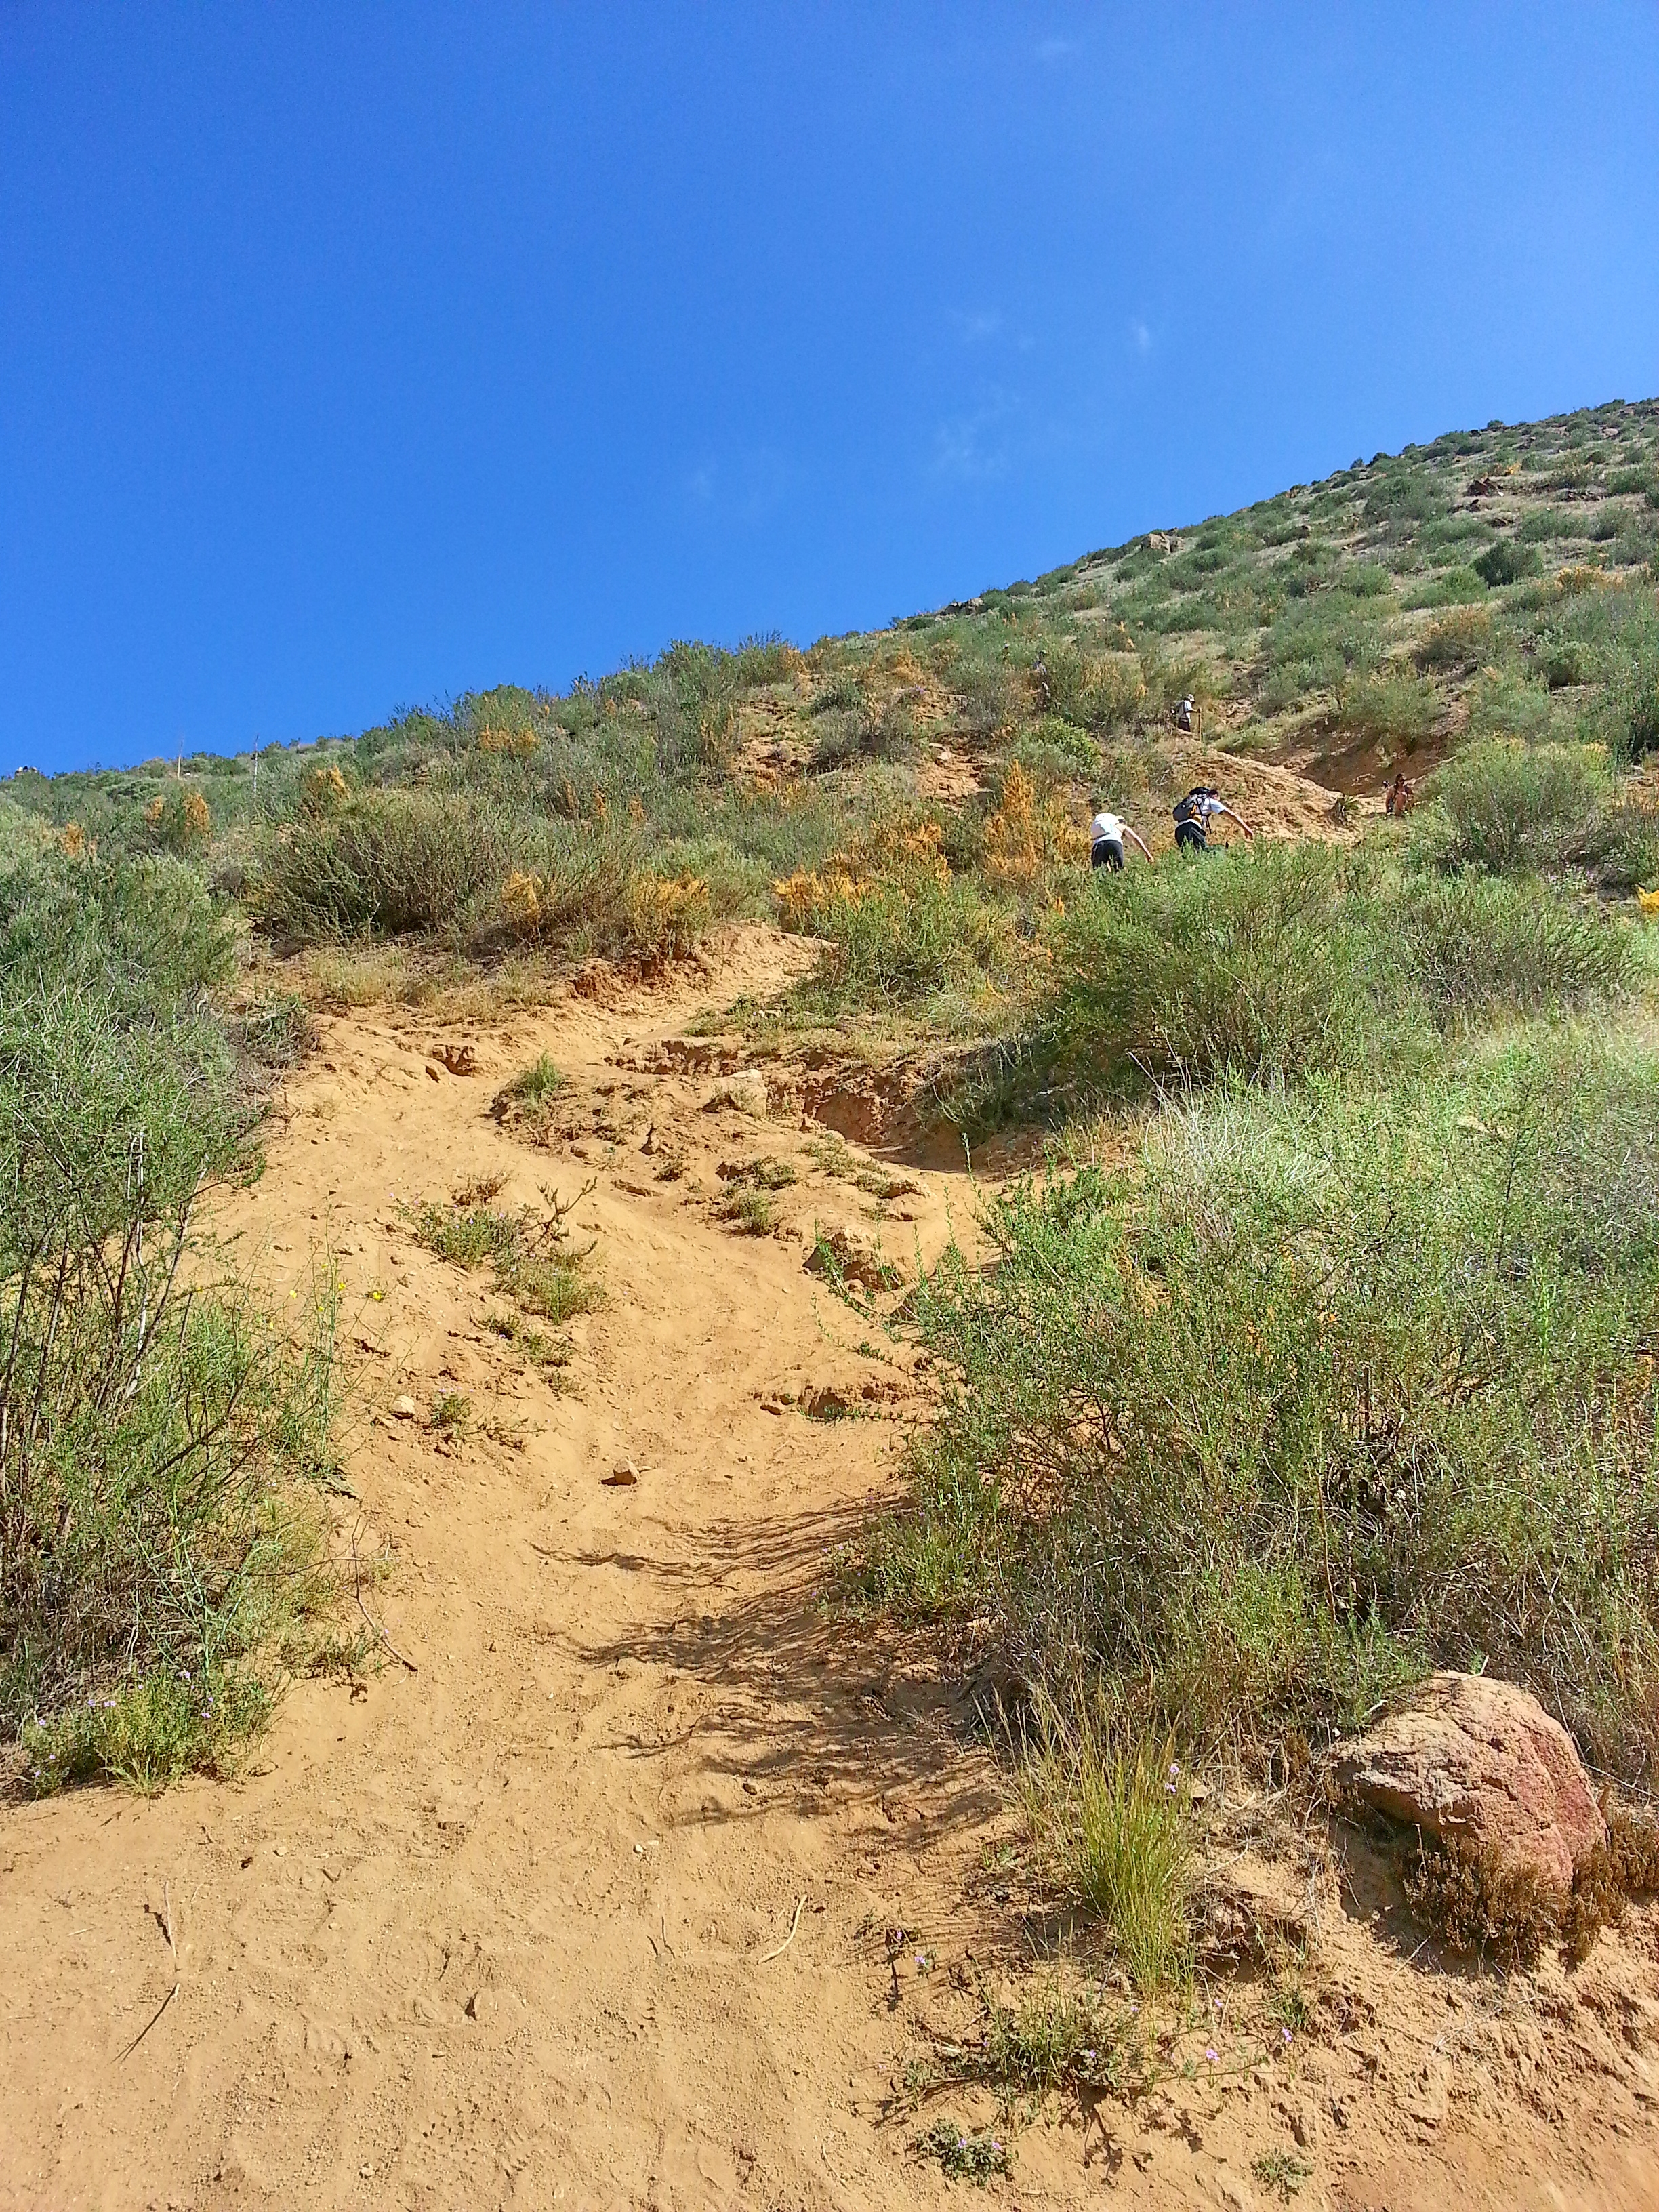 Looking back up at the sandy portion of the trail following the steep section